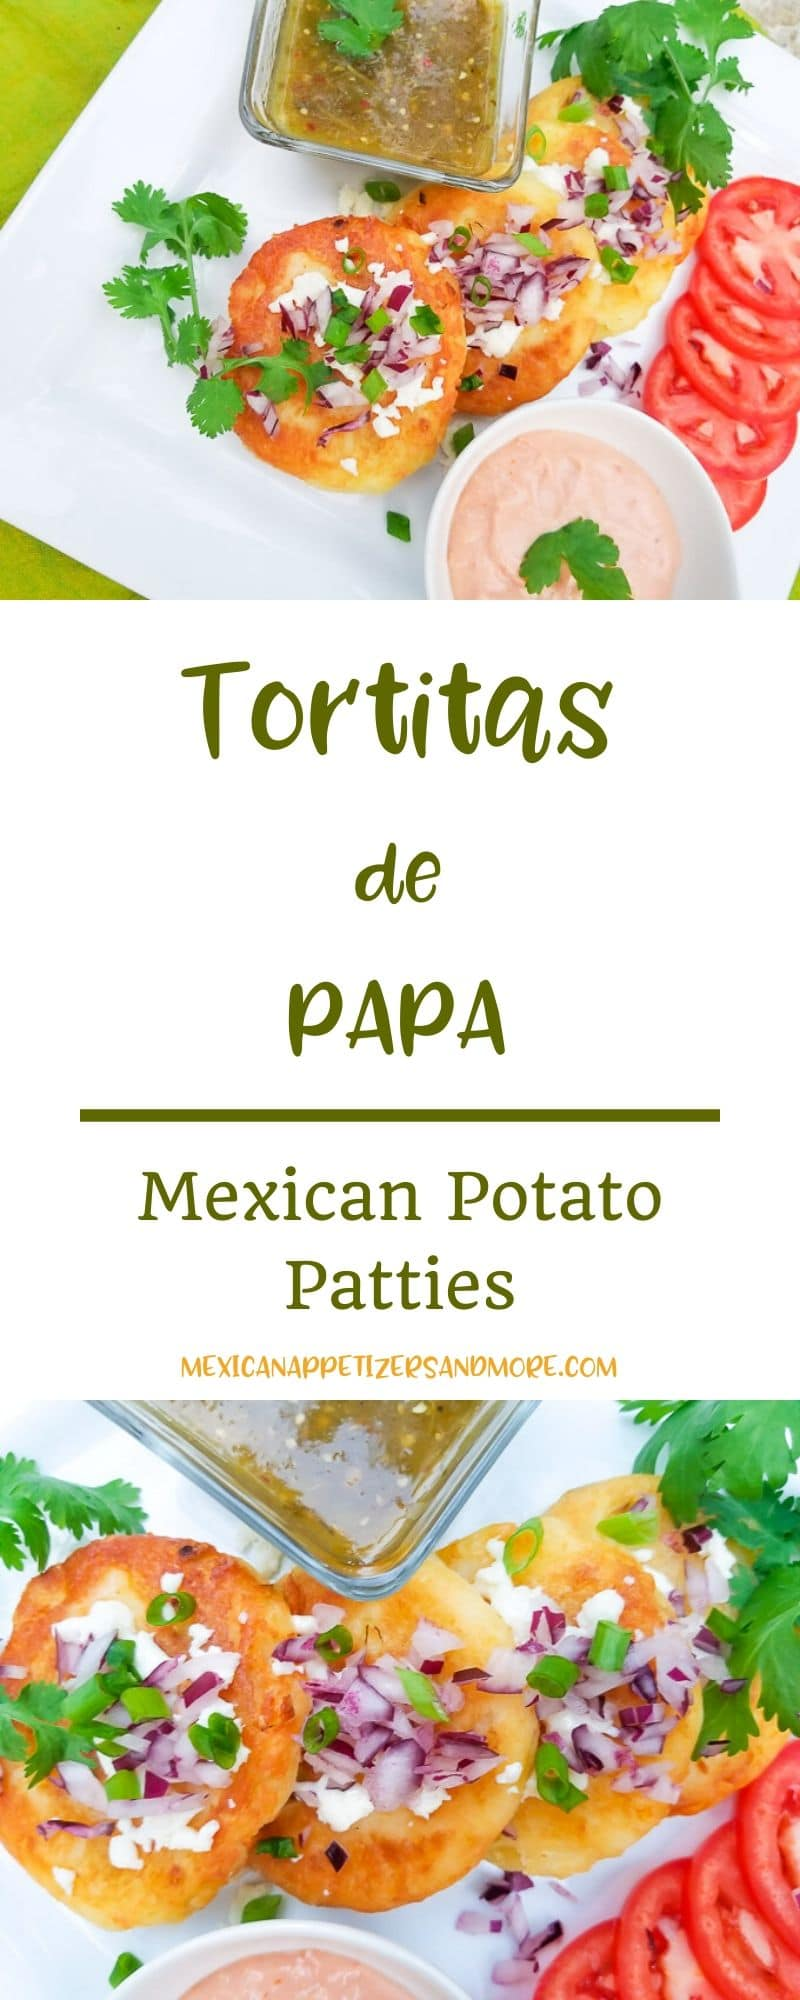 Tortitas de Papa (Potato Fritters) are delicious potato patties that are perfectly crispy on the outside, creamy and fluffy on the inside. A perfect little morsel for any meal of the day! #tortitasdepapa #potatopatties #lentdishes #vegetarian